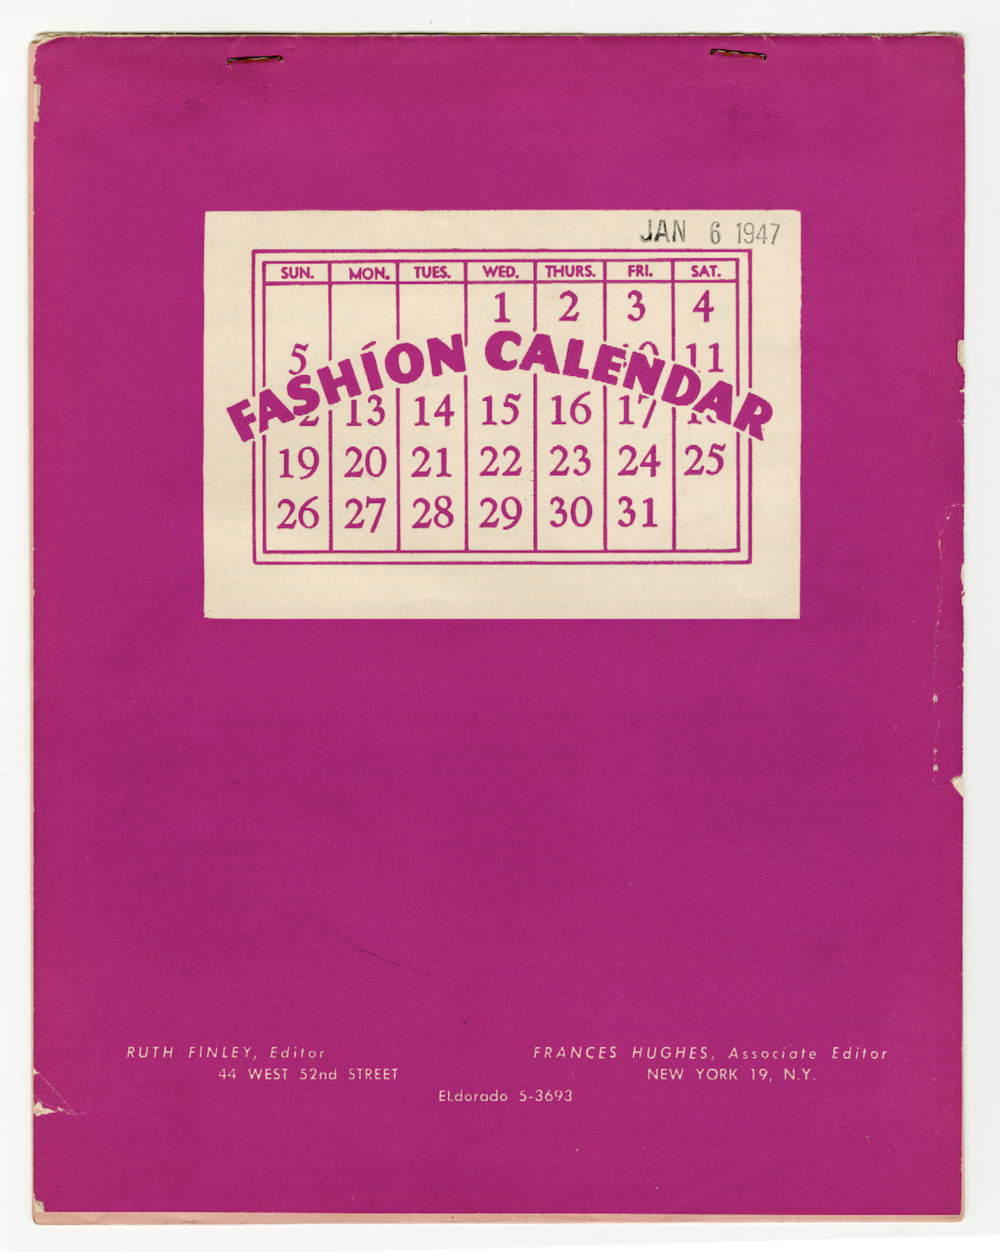 Image provided by the author. Courtesy of Special Collections at The Fashion Institute of Technology.